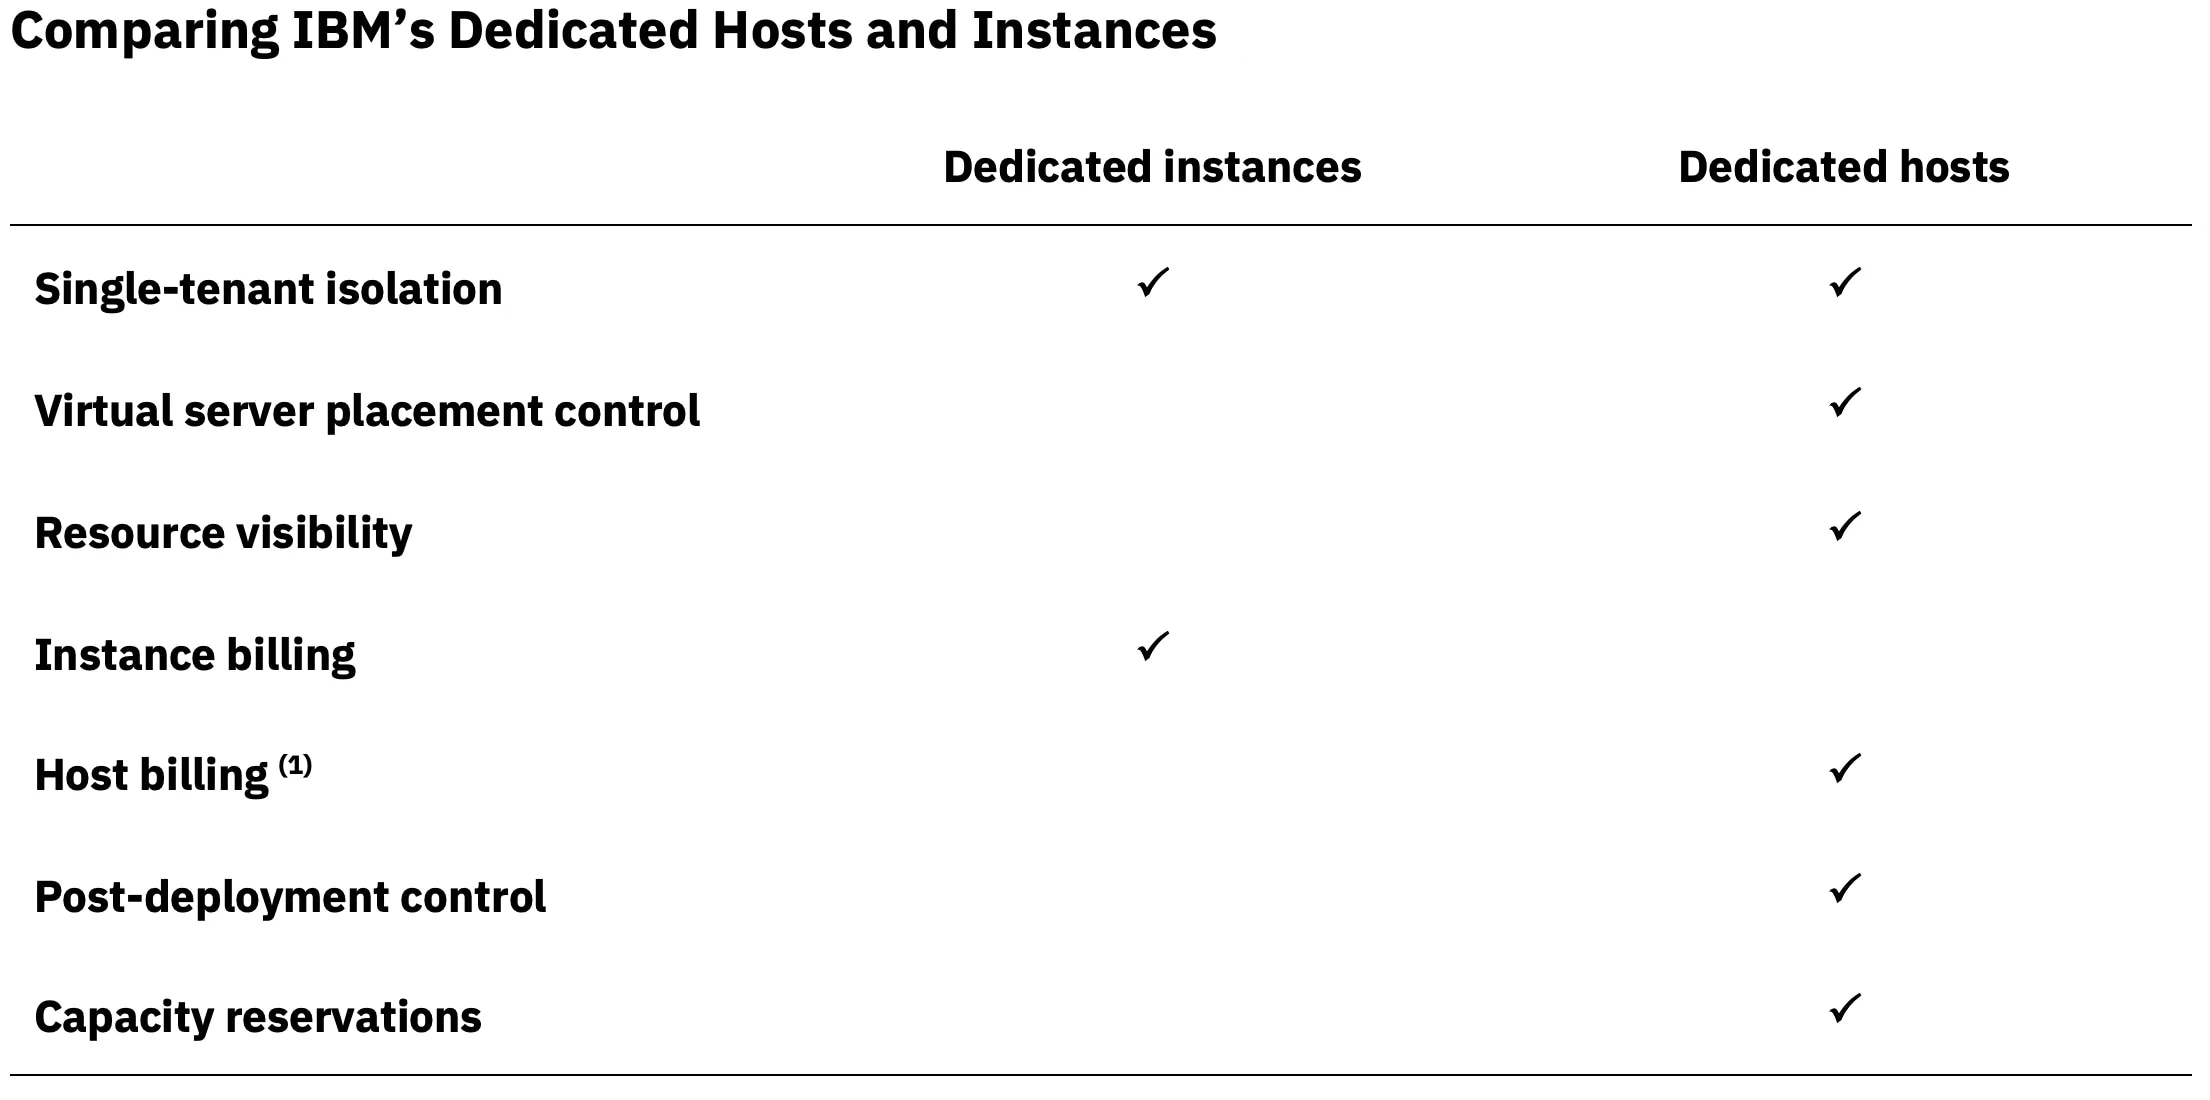 Screenshot showing checklist comparing IBM Dedicated Hosts and Instances